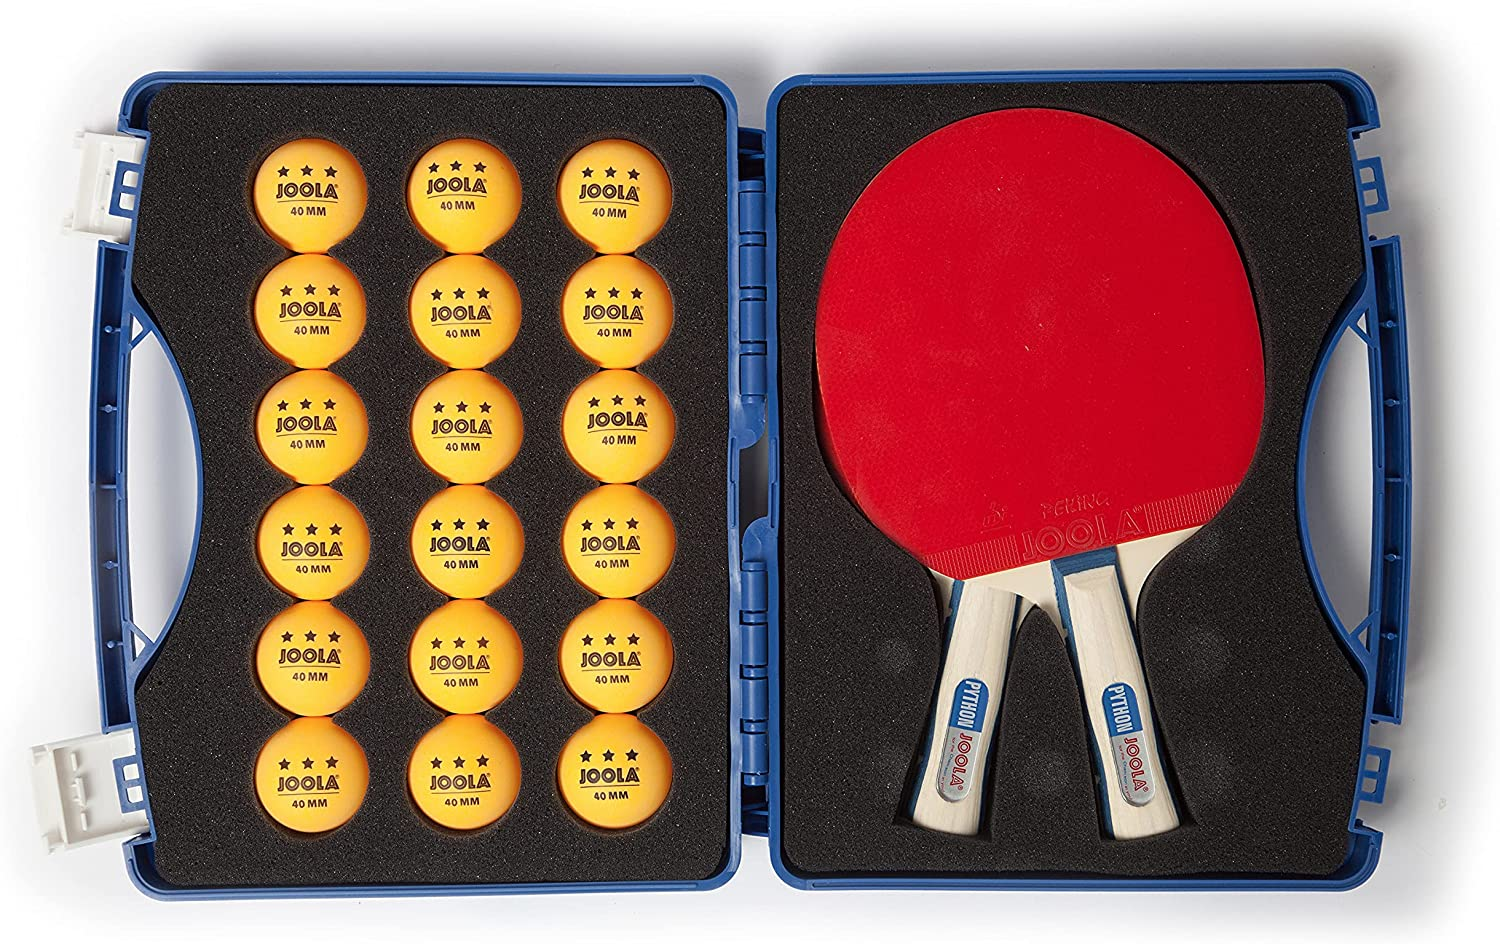 Challenge the lowest Charlotte Mall price of Japan ☆ JOOLA Tour Carrying Case - Ping Pong Paddle 40mm 18 3 with